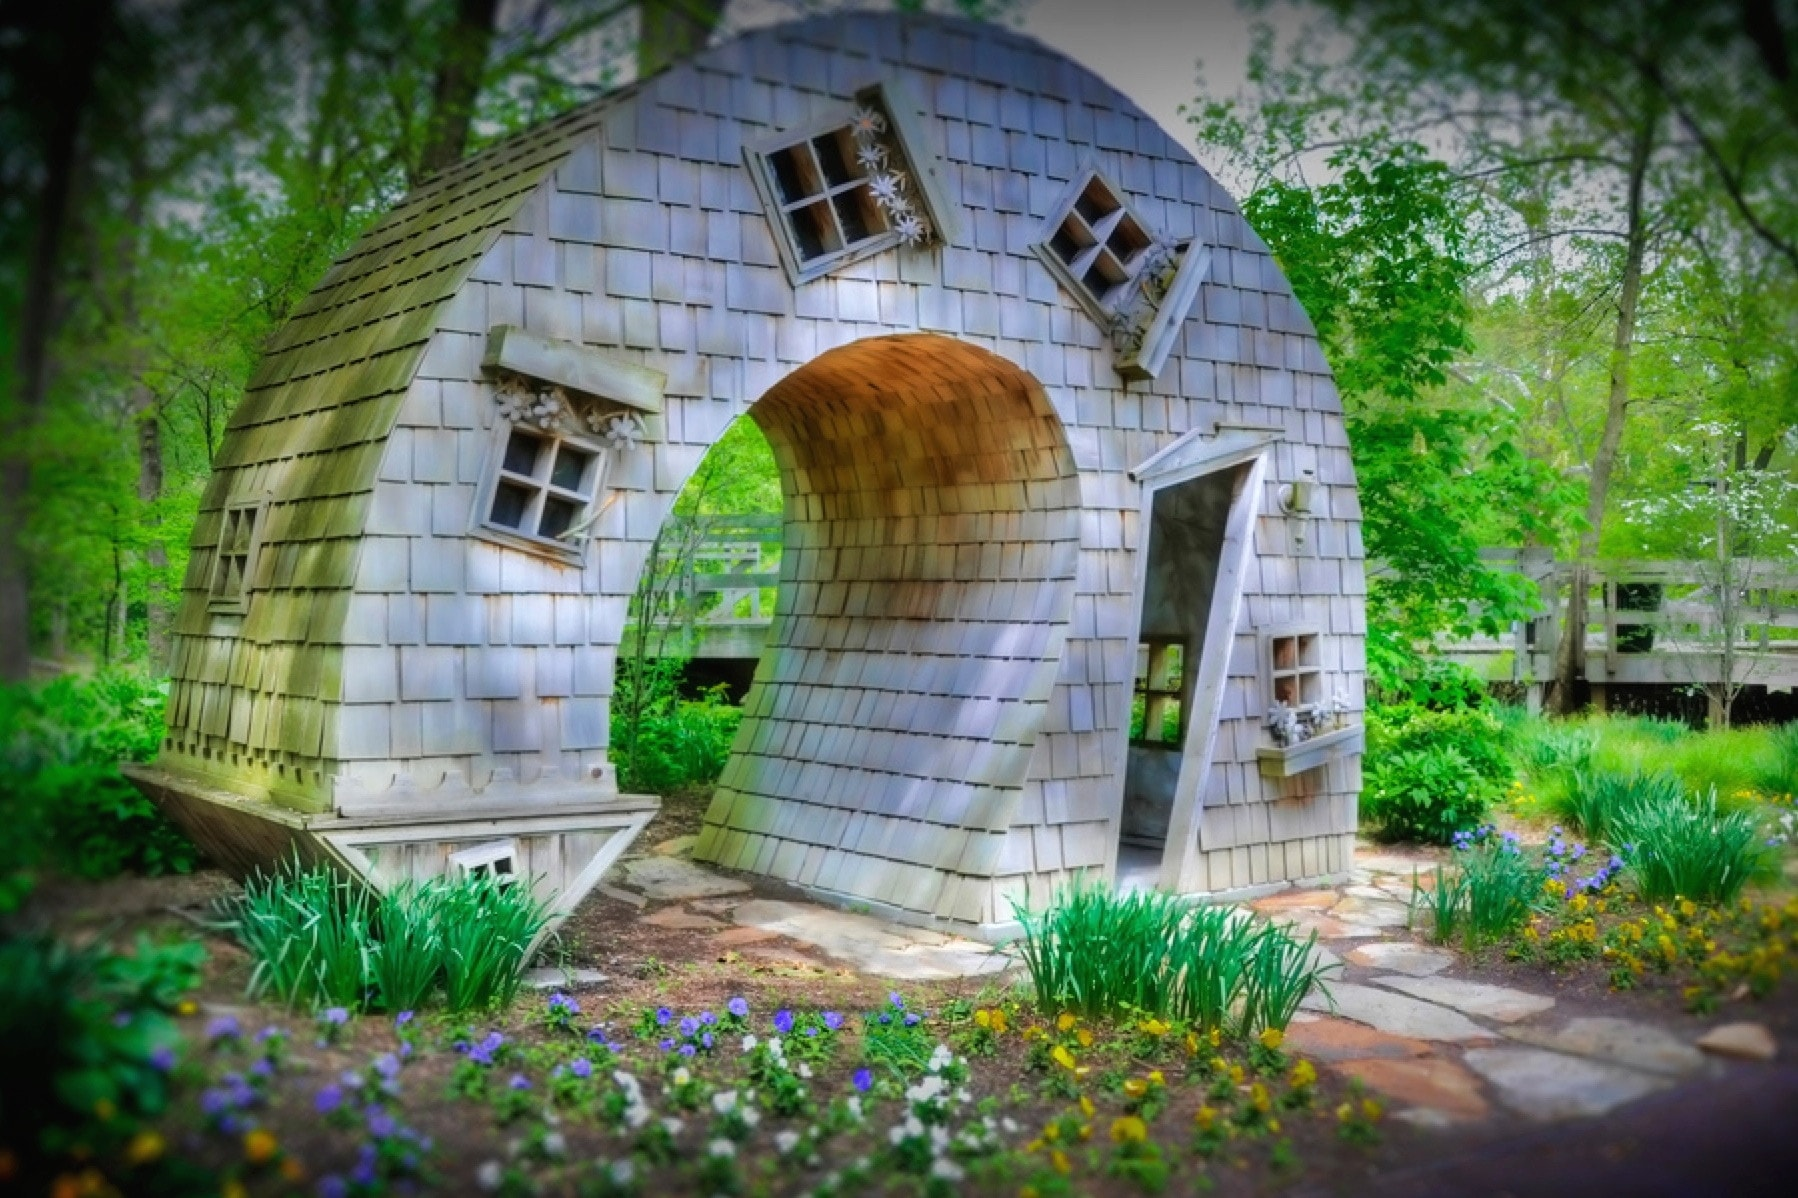 The curved house indianapolis indiana